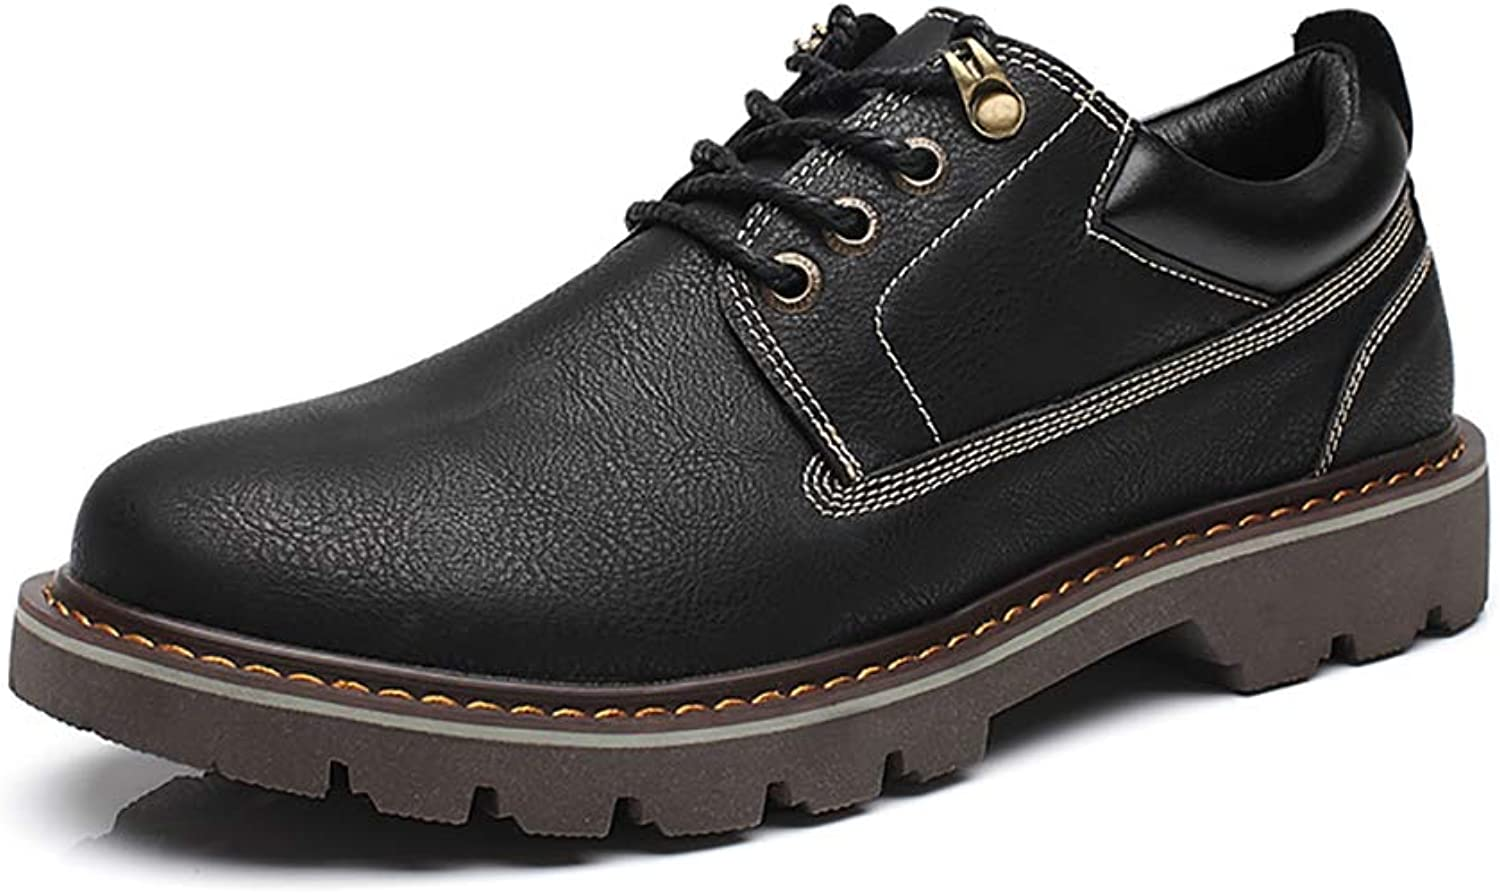 SMILINGGIRL England Boots - Low Help Martin shoes - Tooling shoes - Casual Men's Leather shoes Black (Thick, Thin),Blackb,8